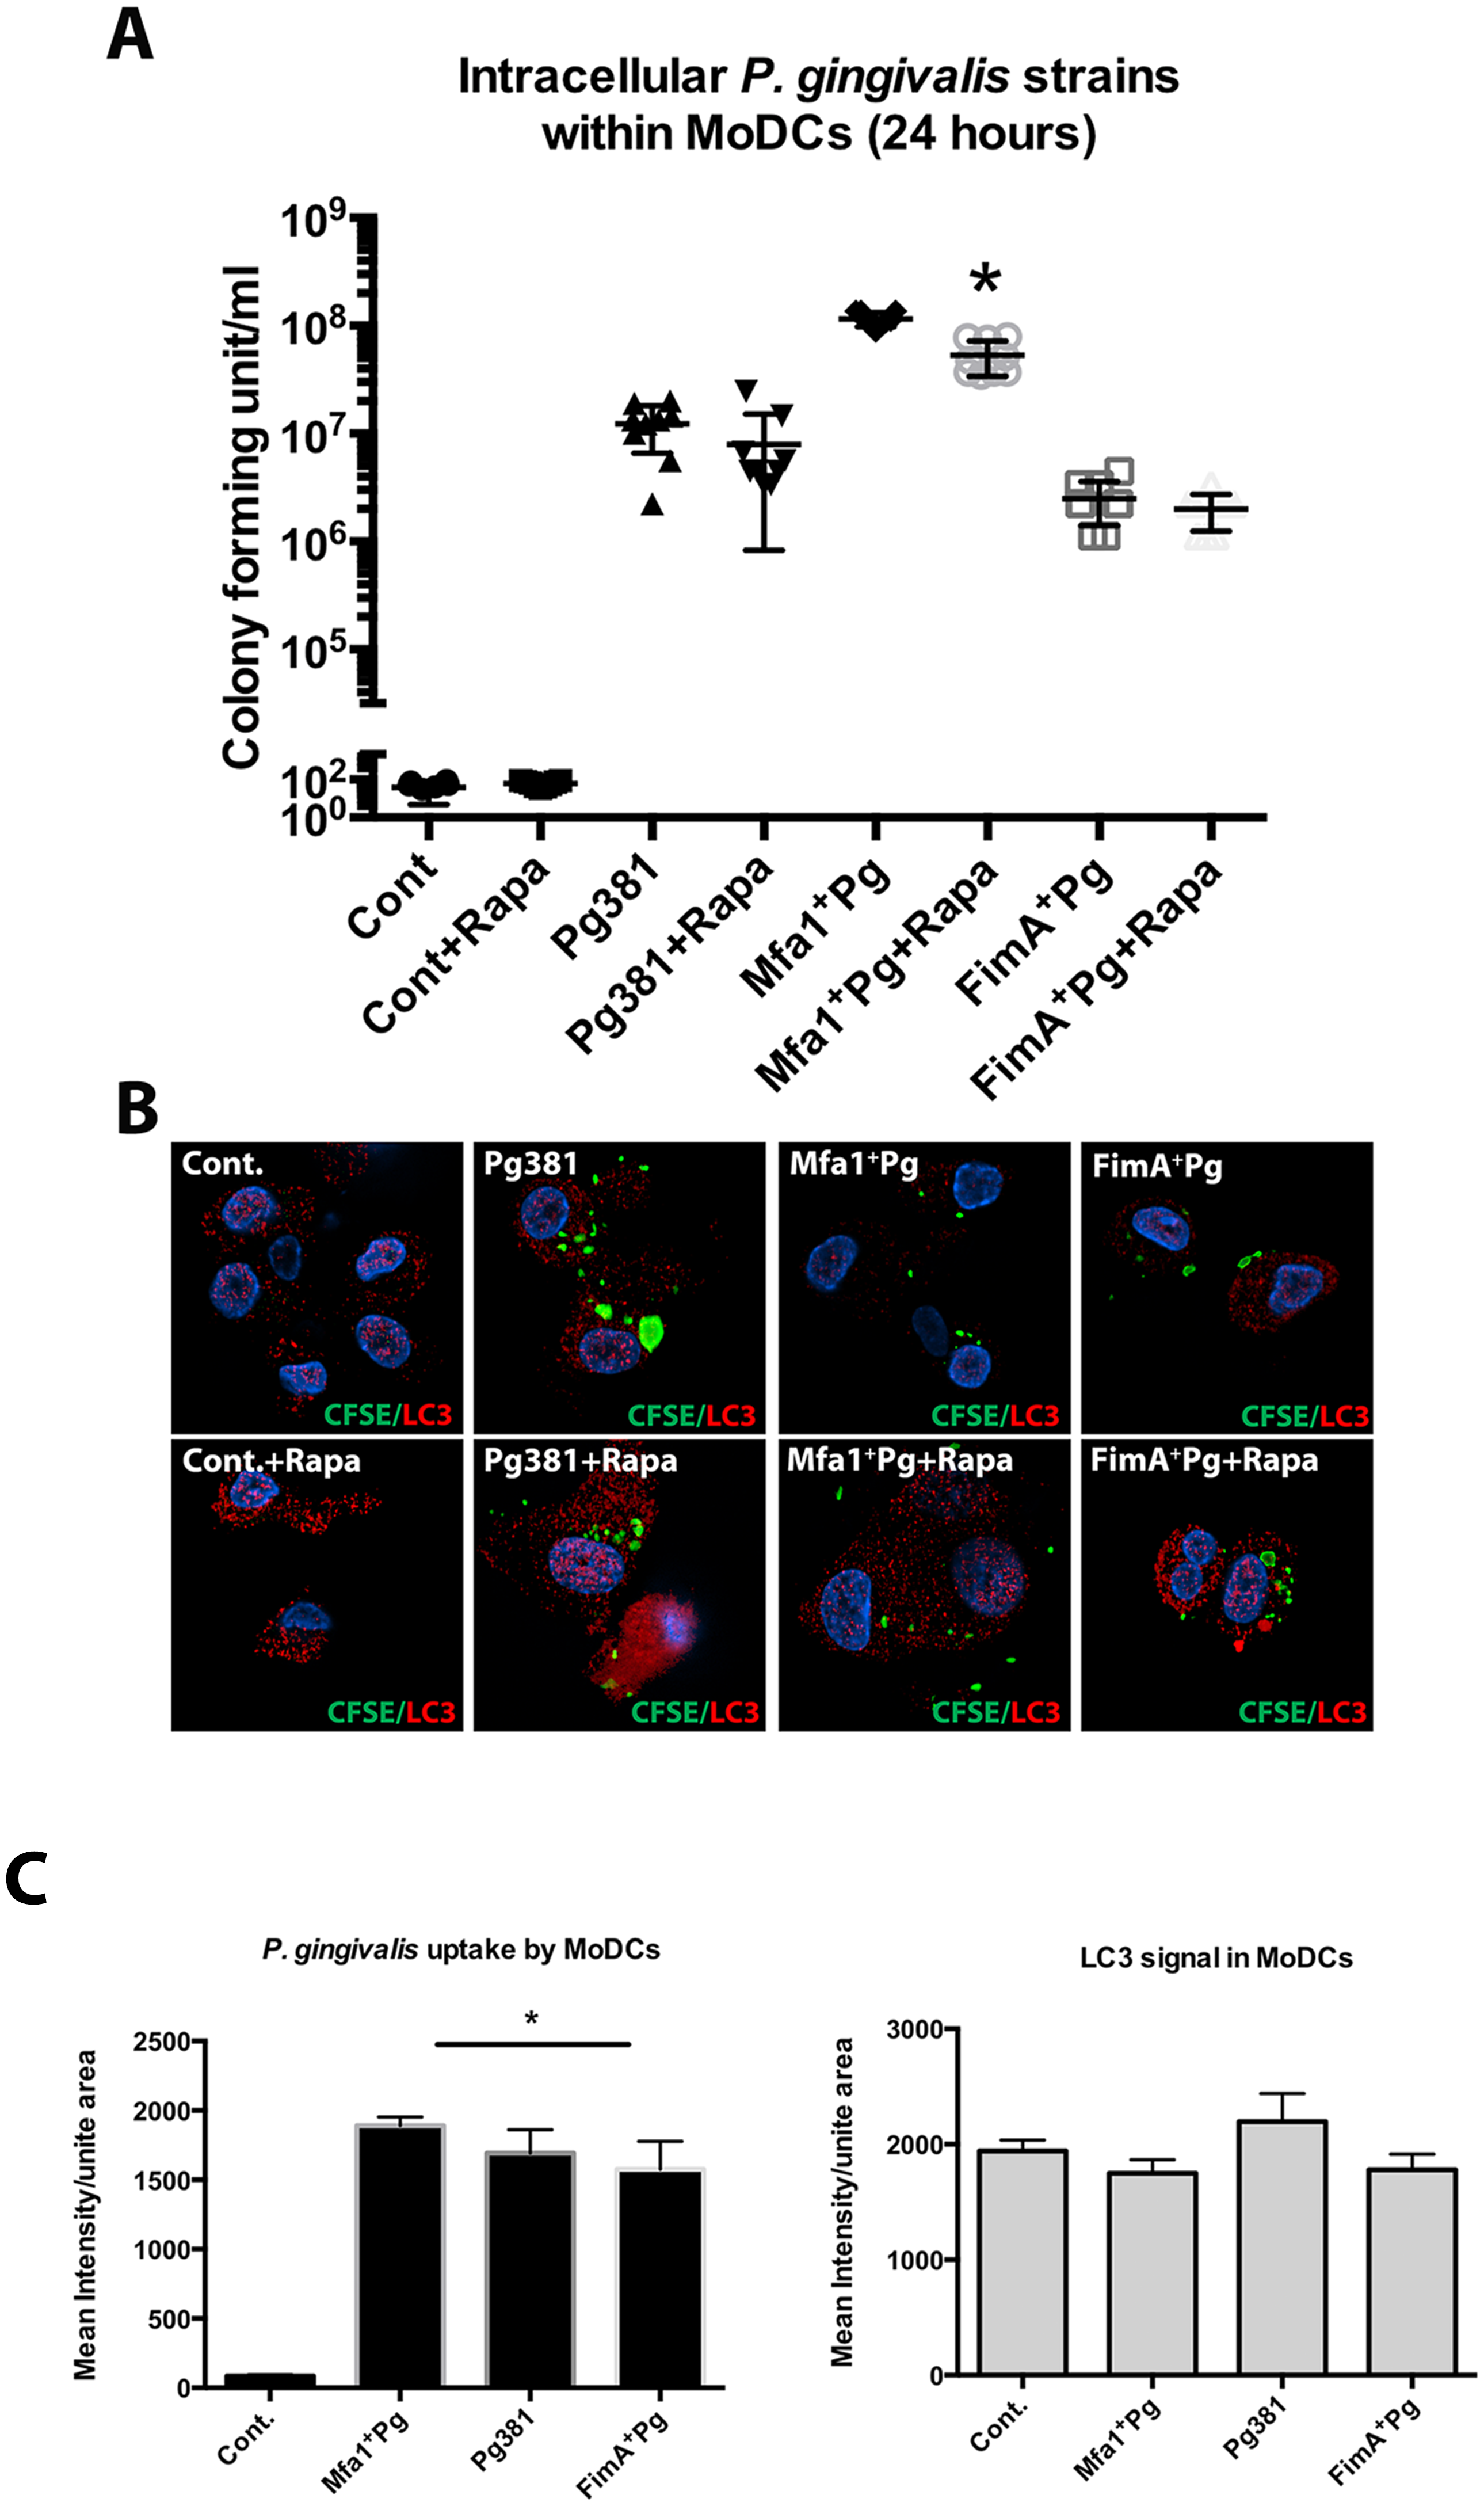 Lower intracellular content of Mfa1<sup>+</sup>Pg in MoDCs treated with Rapamycin.